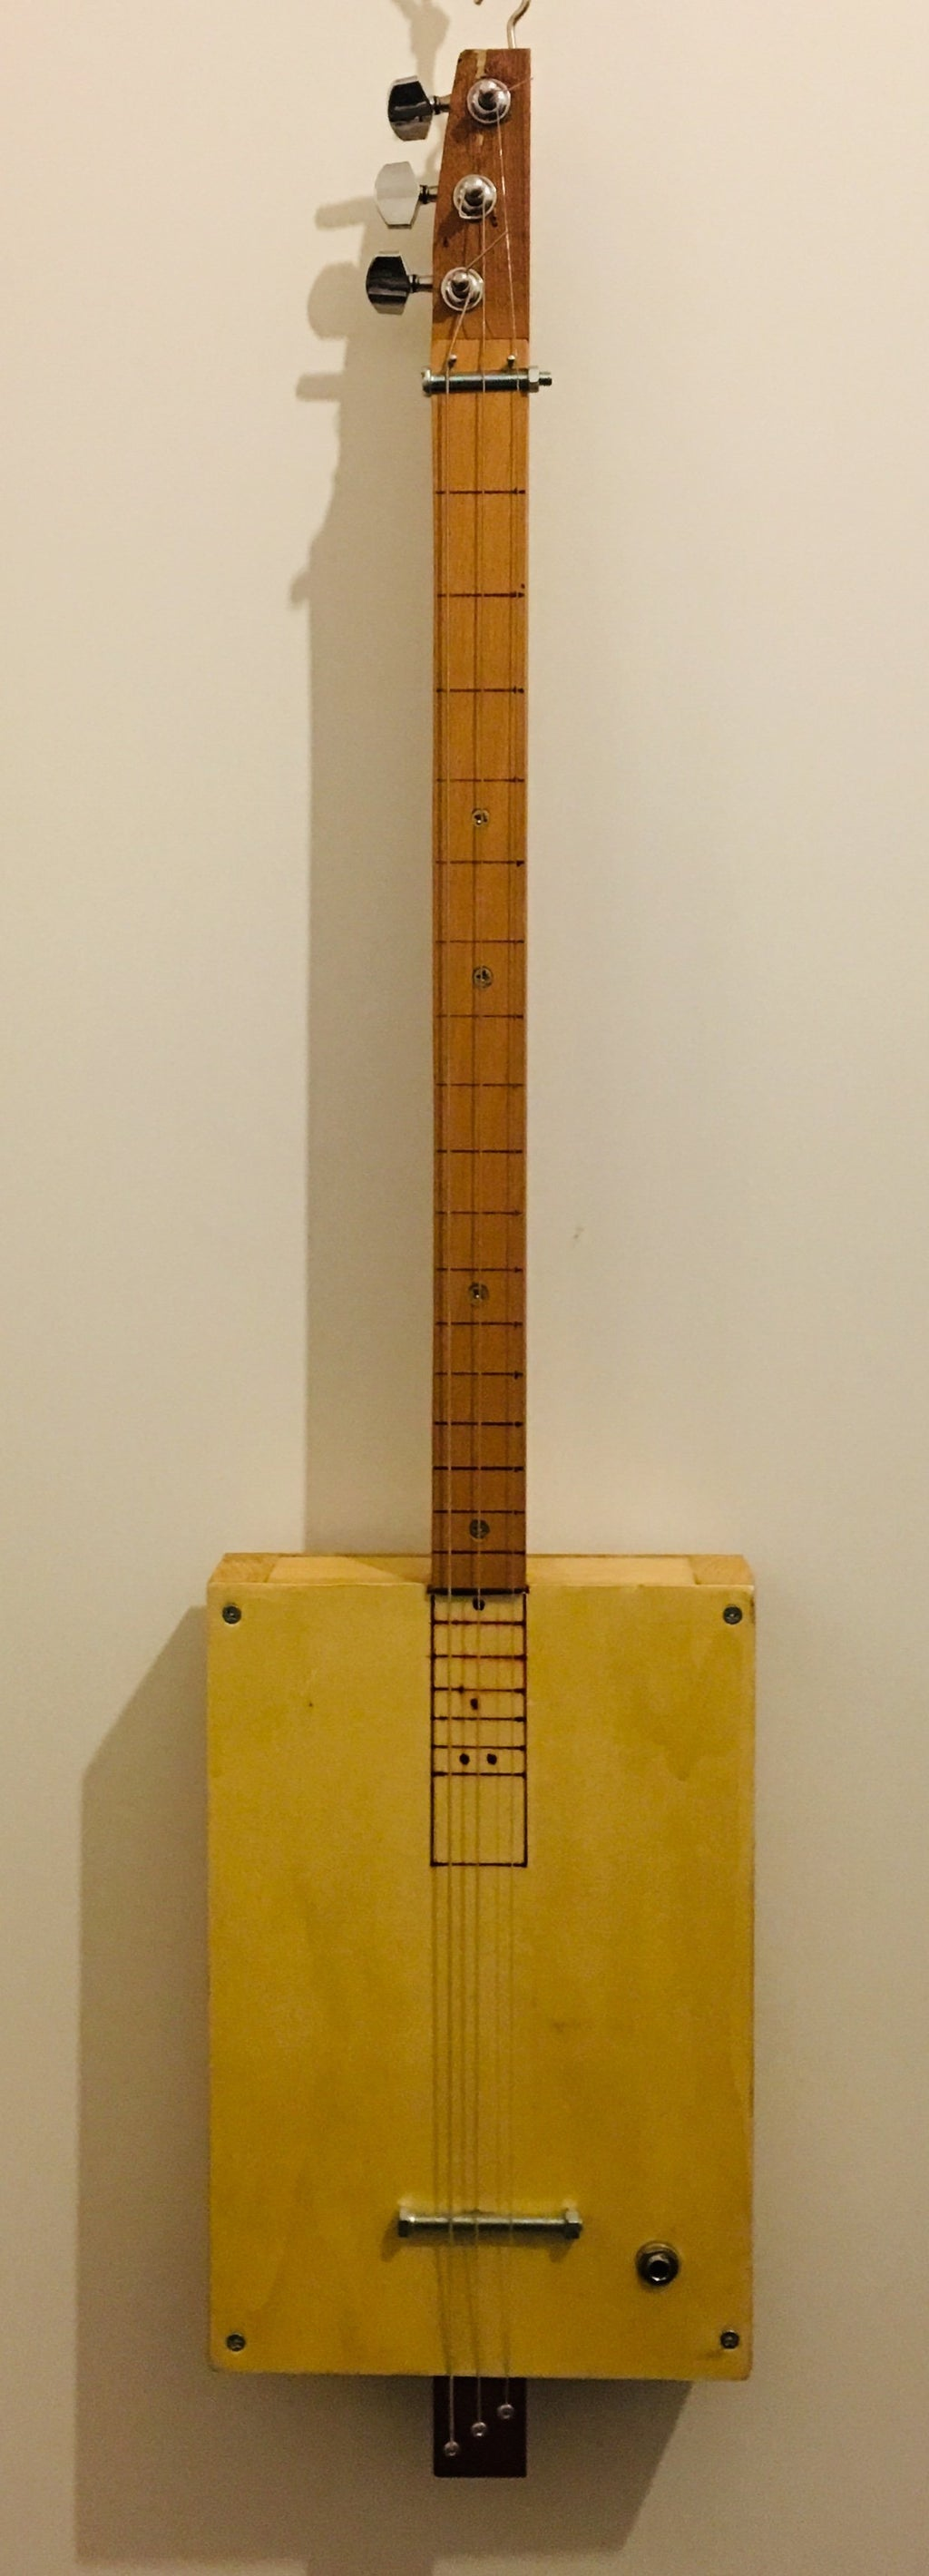 Fretless Cigar Box Guitar Course - 1 day